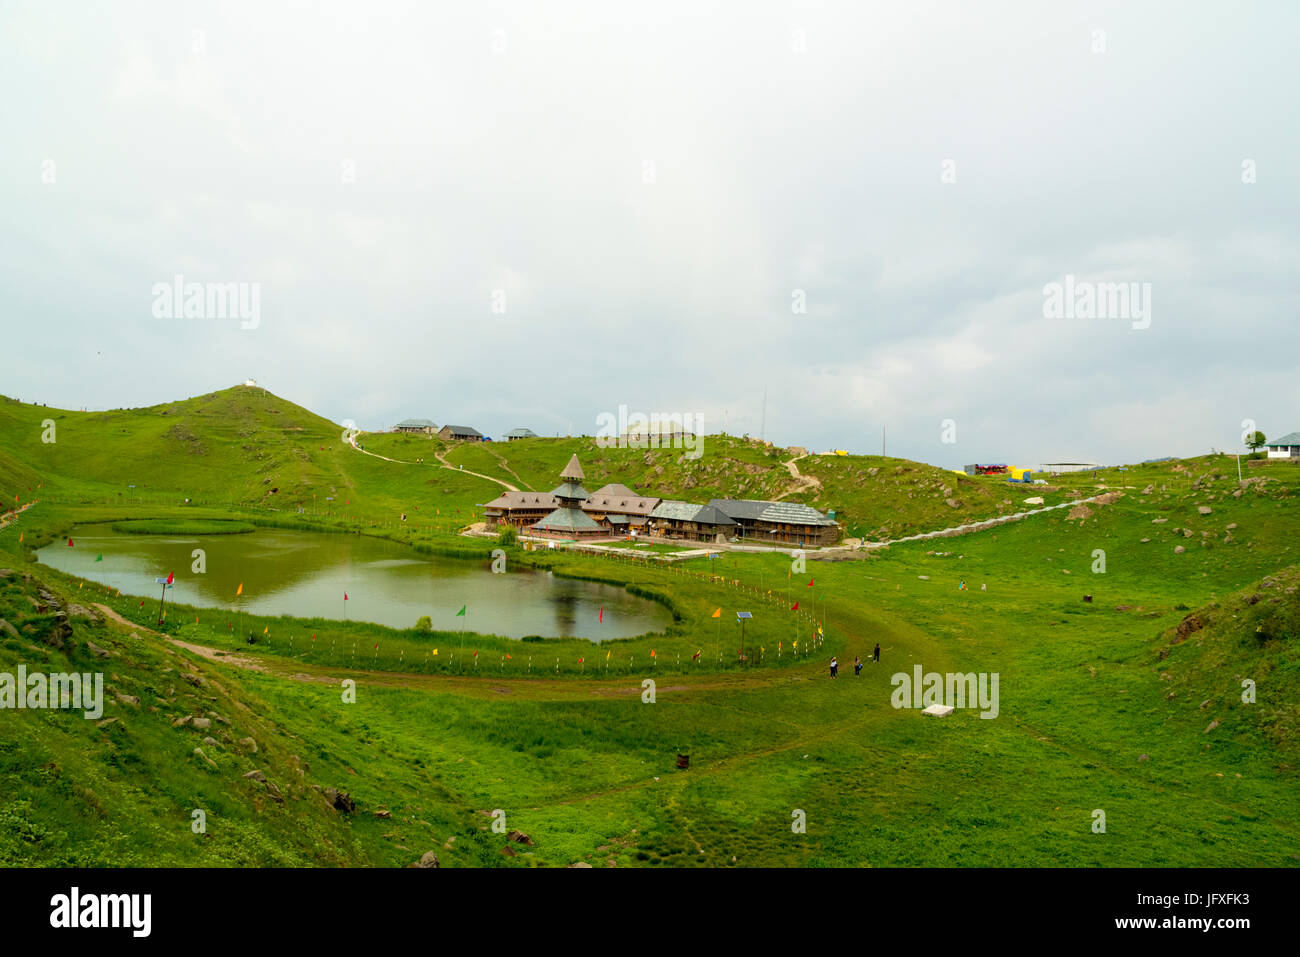 Ancient Prashar Lake Temple view with Prashar Holy water Pond and Green nature landscape at Prashar Lake, Mandi - Stock Image